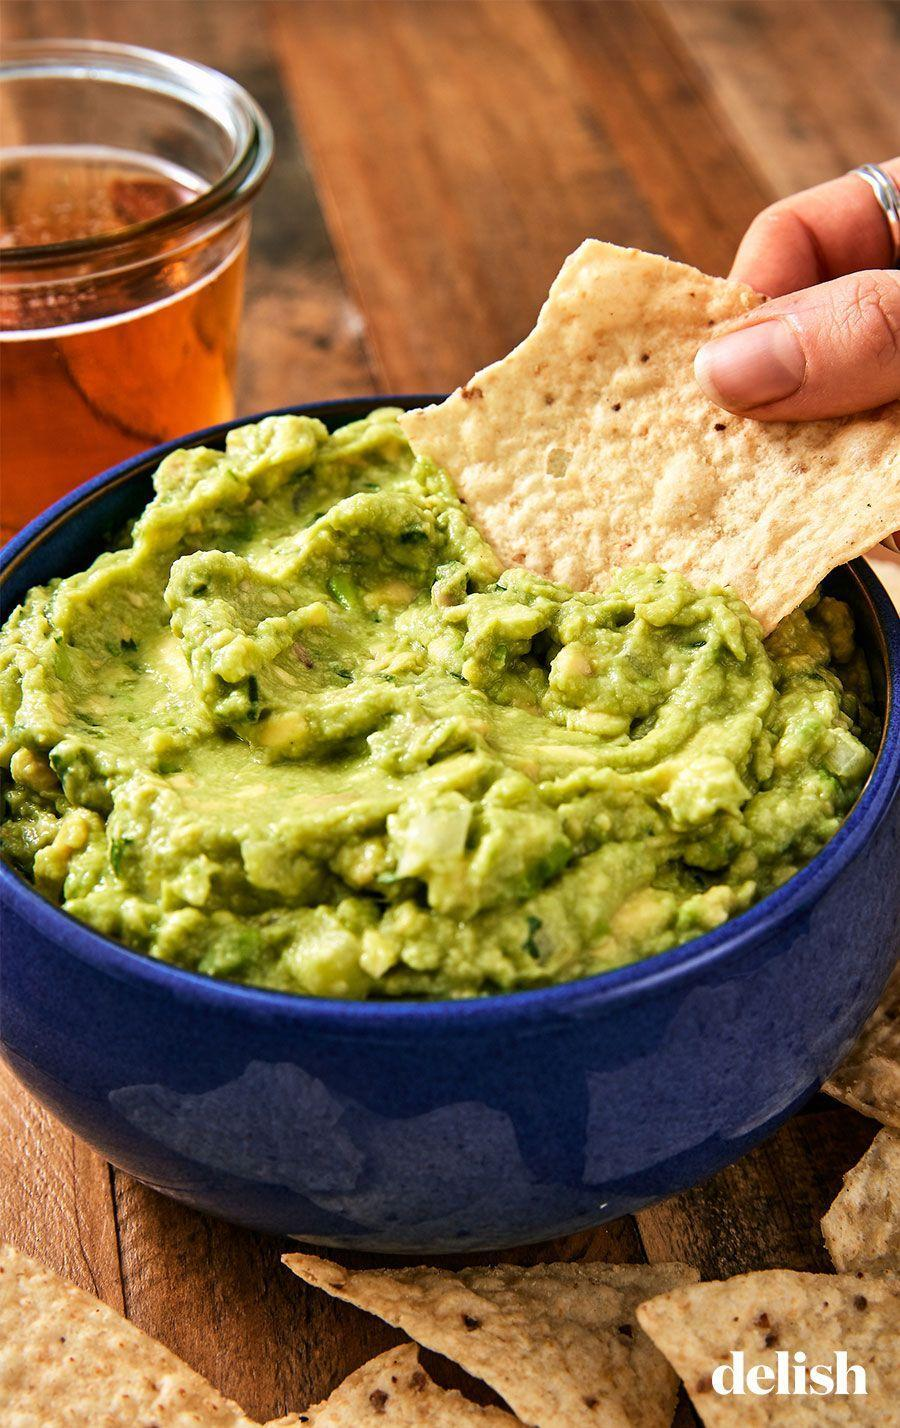 "<p>Sometimes, you just need a big bowl of guac in your life.</p><p>Get the recipe from <a href=""https://www.delish.com/cooking/recipe-ideas/recipes/a45570/best-ever-guacamole-recipe/"" rel=""nofollow noopener"" target=""_blank"" data-ylk=""slk:Delish"" class=""link rapid-noclick-resp"">Delish</a>.</p>"